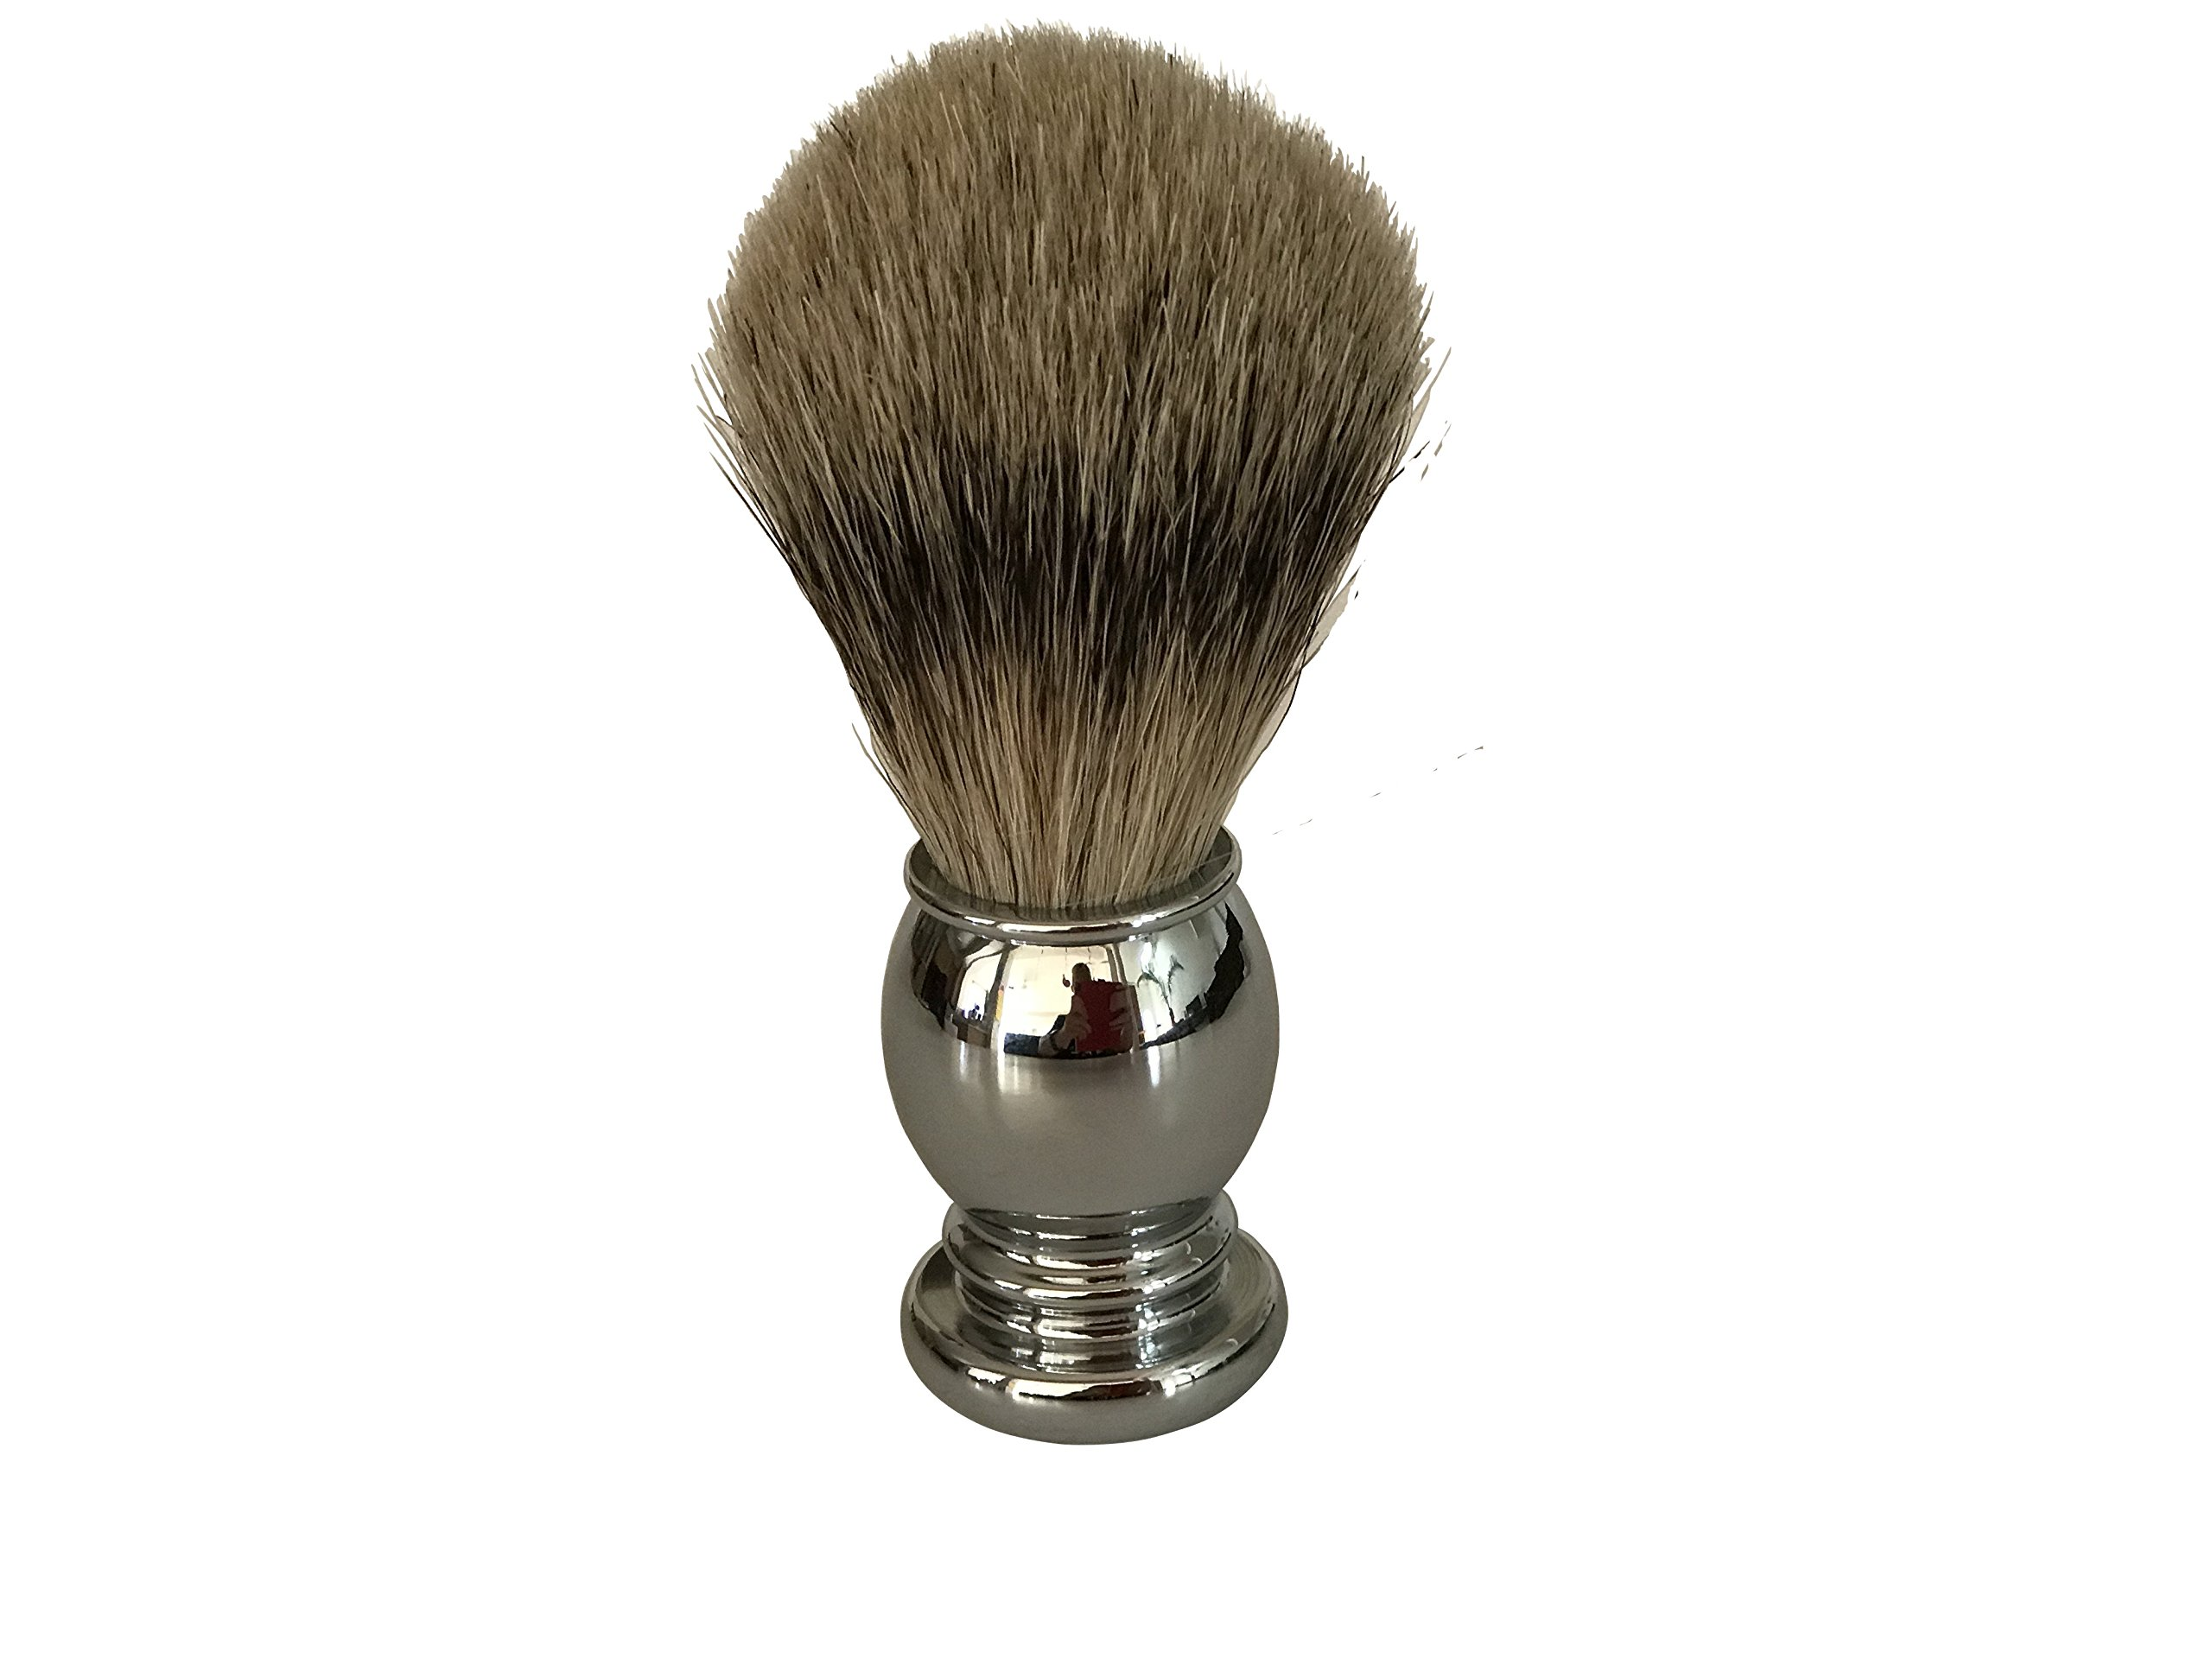 Shaving Brush By Apollo, 100% Best Silvertip Badger Bristle with Chrome Handle Will Fit the Apollo Stand and Is a Great Addition to Your Vet Shaving Set/kit. Works up a Great Lather From Your Soap/ Cream/ Butter to Ensure a Great Shave with Your Double Ed